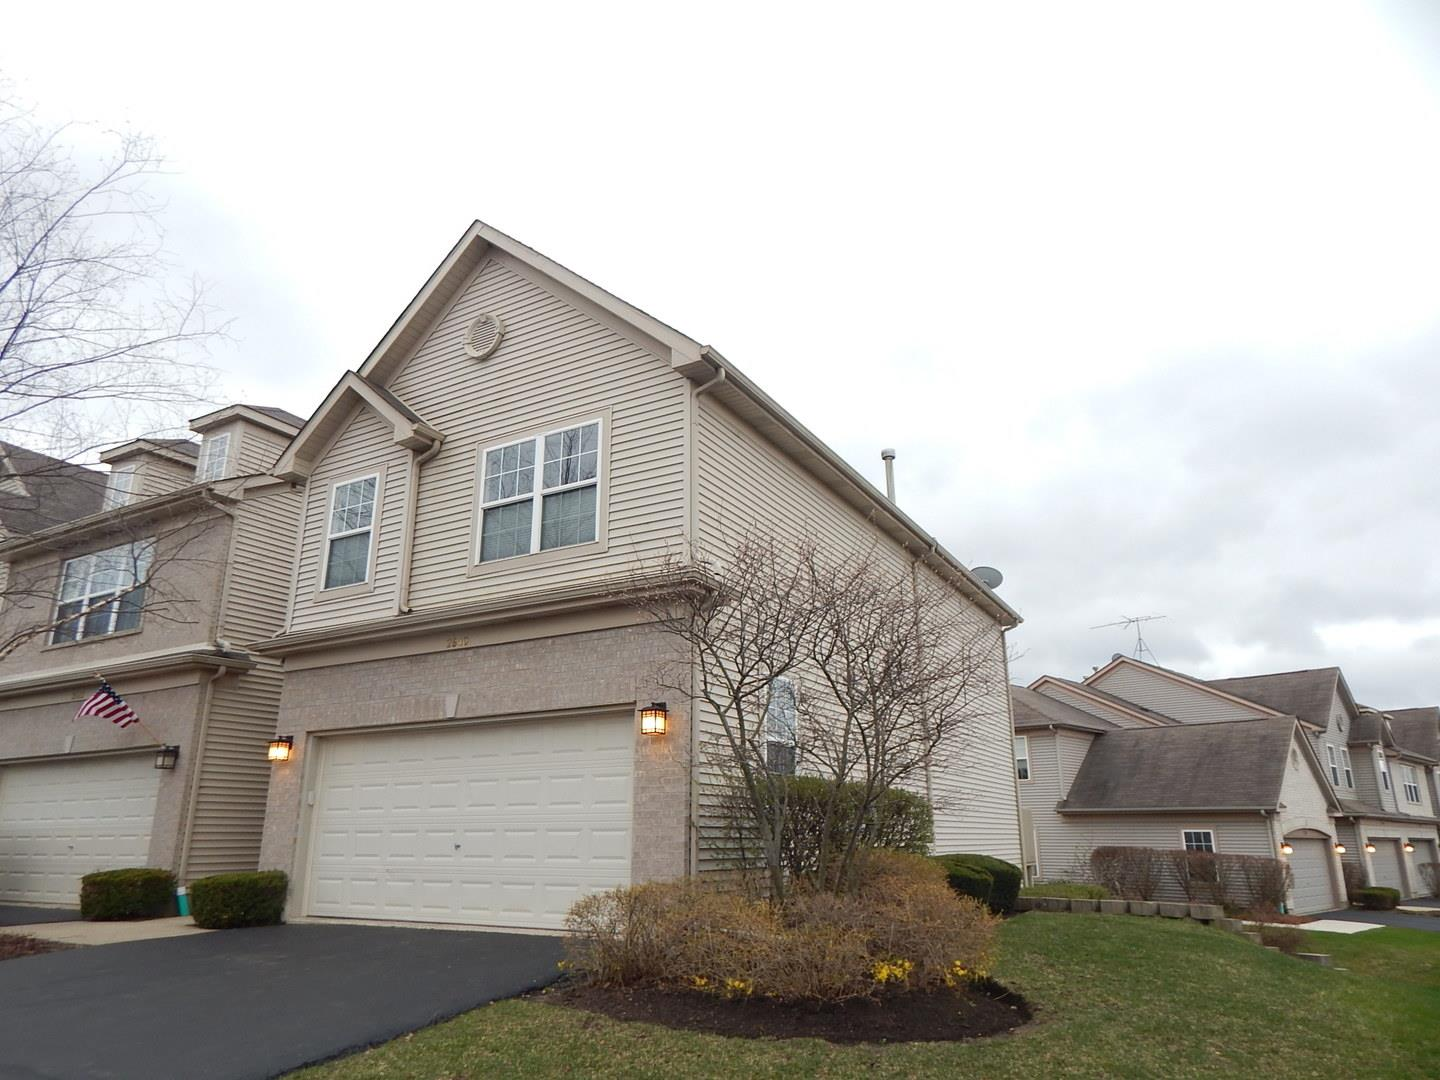 2640 Granite Court, Prairie Grove, IL 60012 - #: 10689795